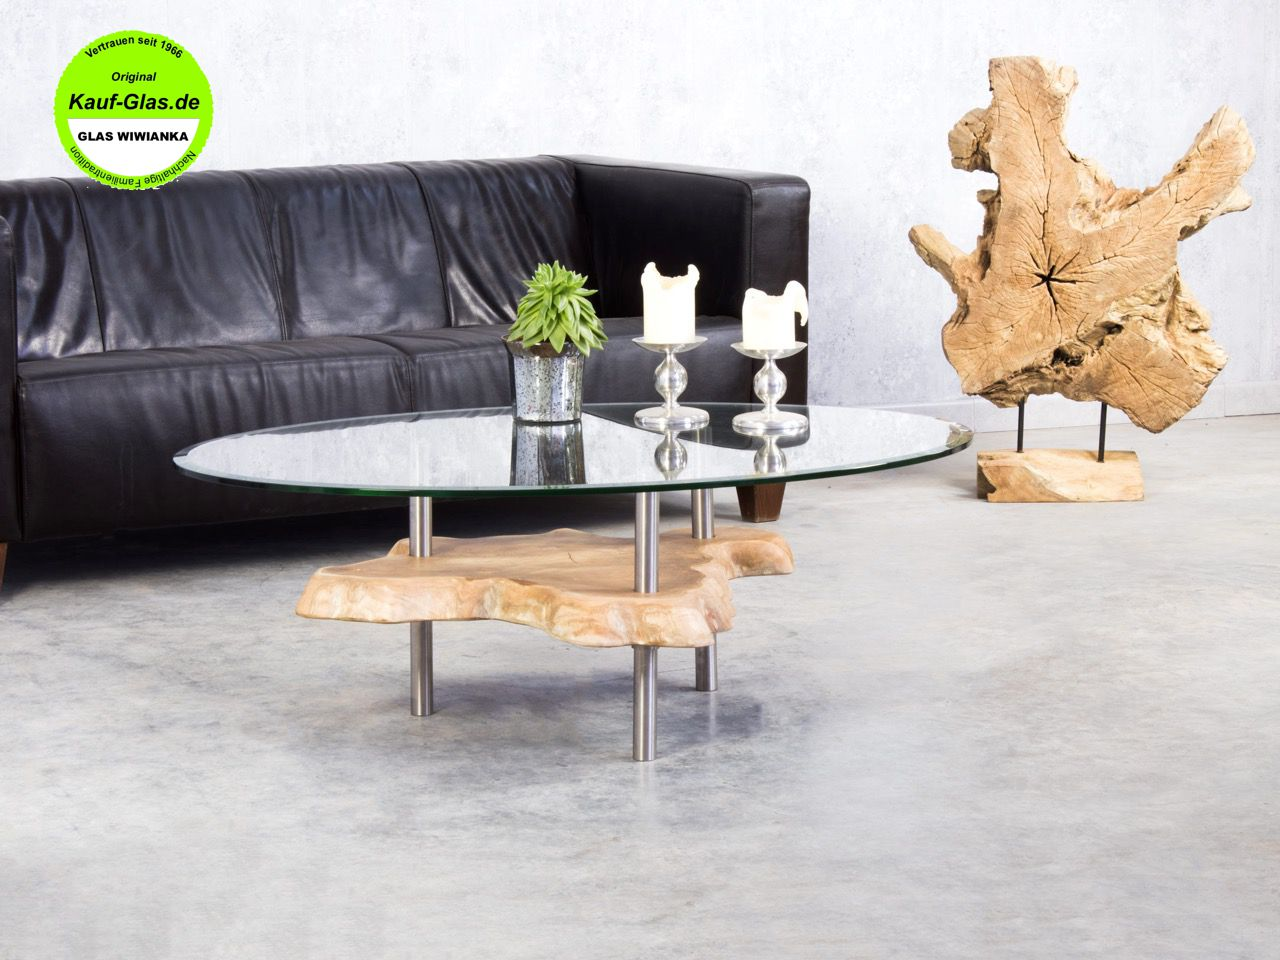 glastische couchtische aus glas glasshop wiwianka marienfeld einfach glas online kaufen. Black Bedroom Furniture Sets. Home Design Ideas